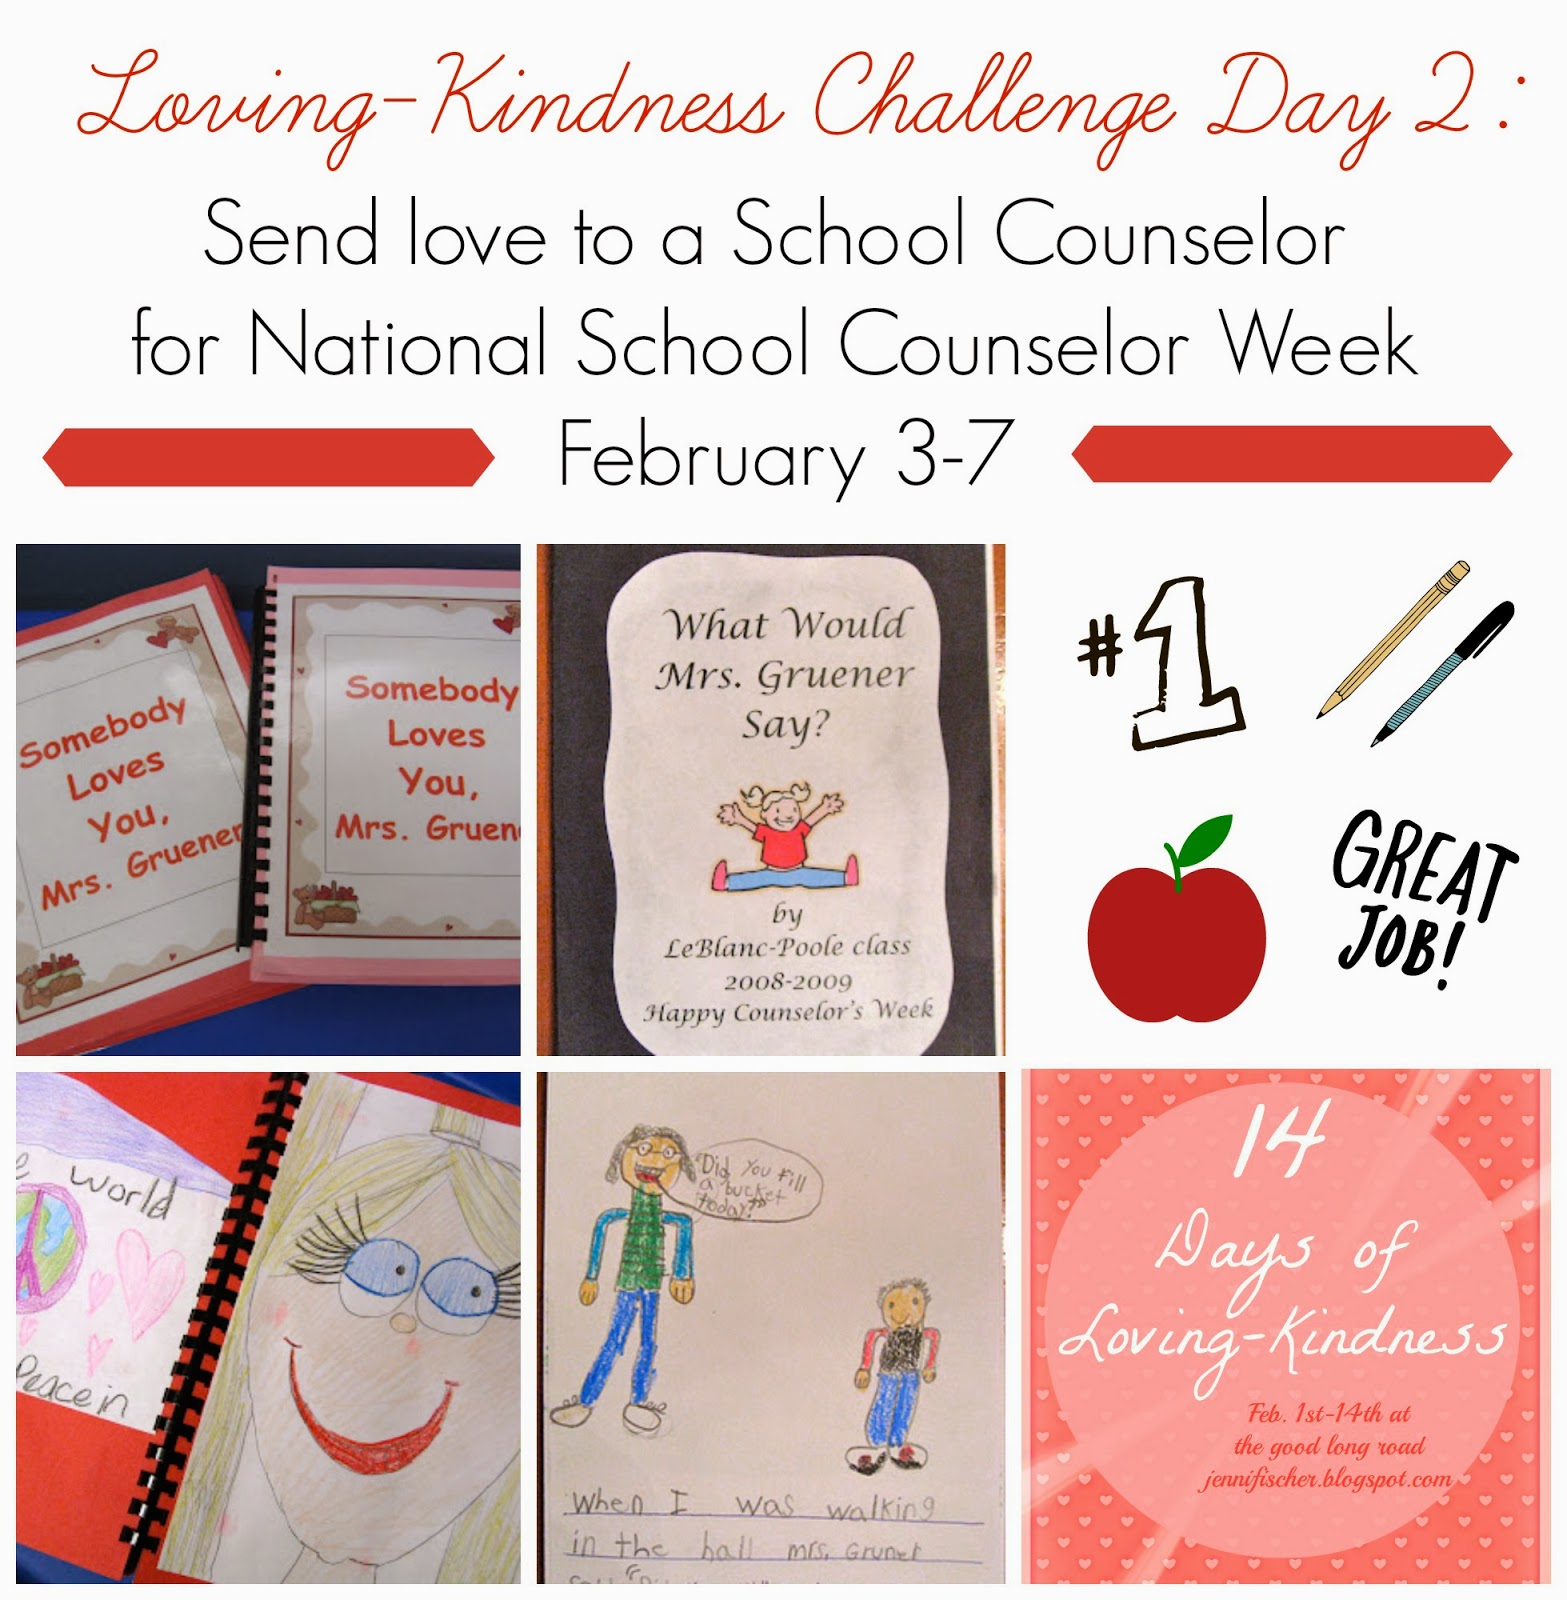 for a School Counselor as part of National School Counselor Week